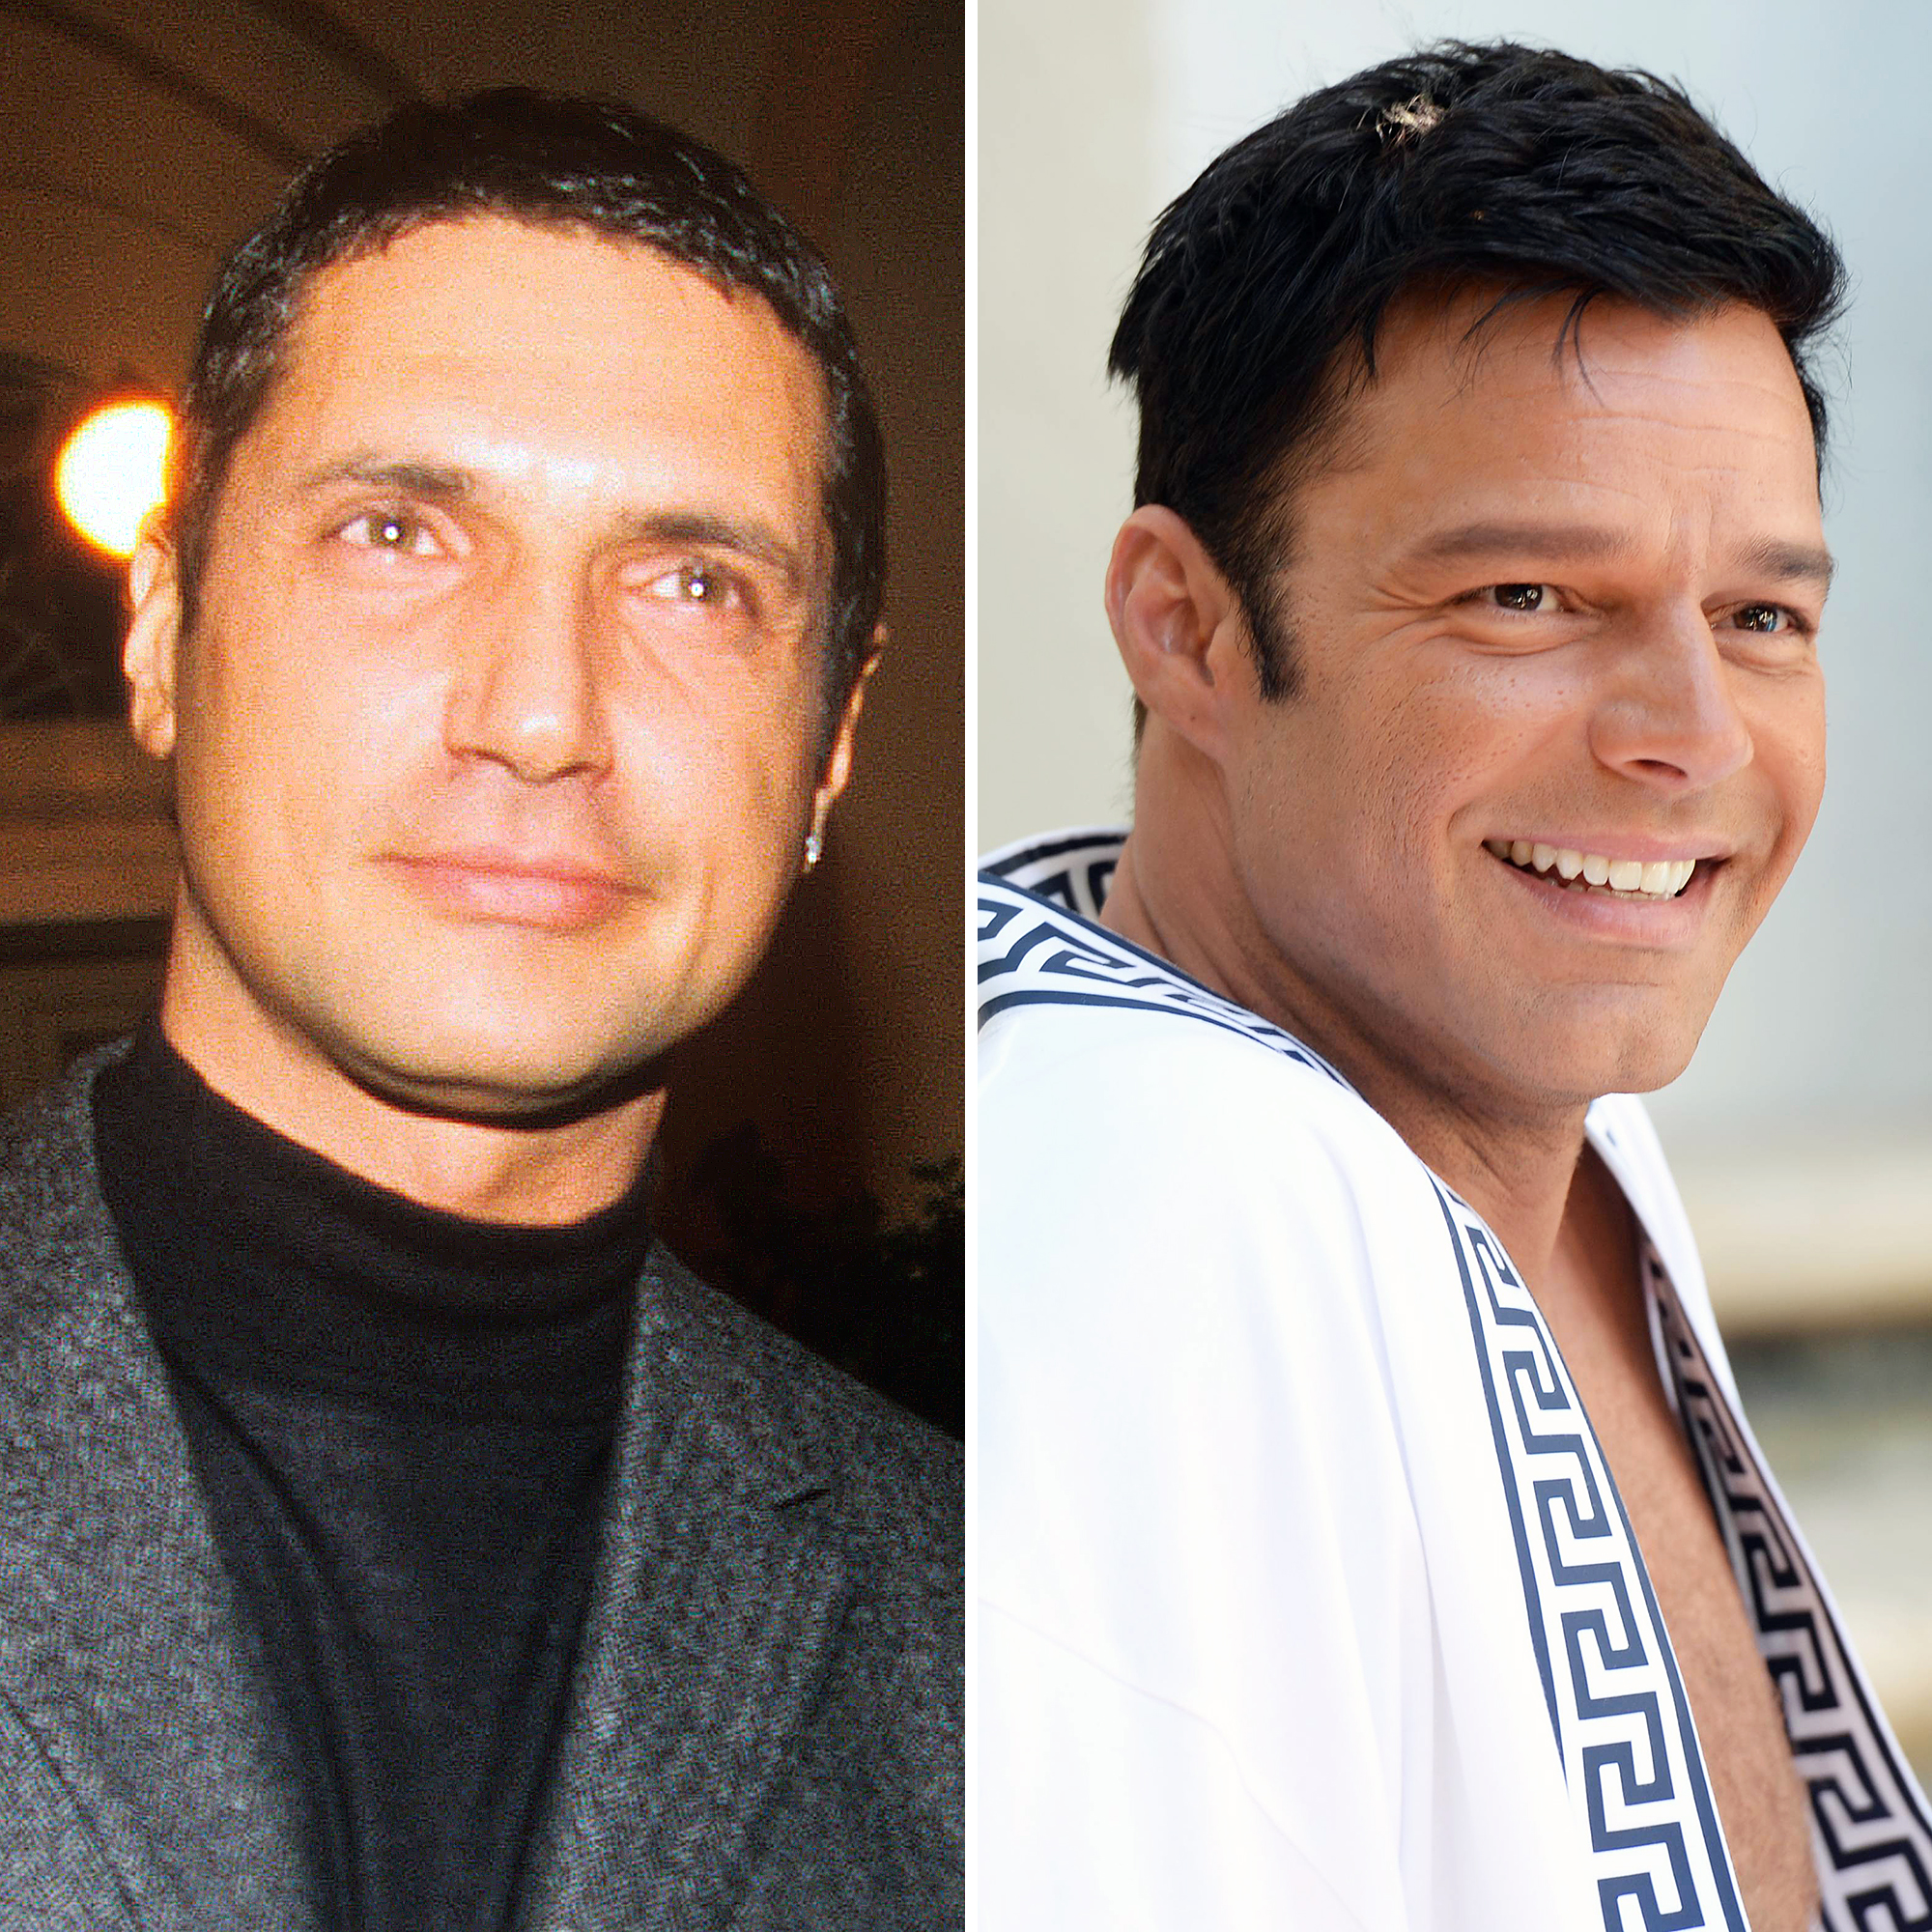 Alberto D Amico assassination of gianni versace' cast vs. real-life people